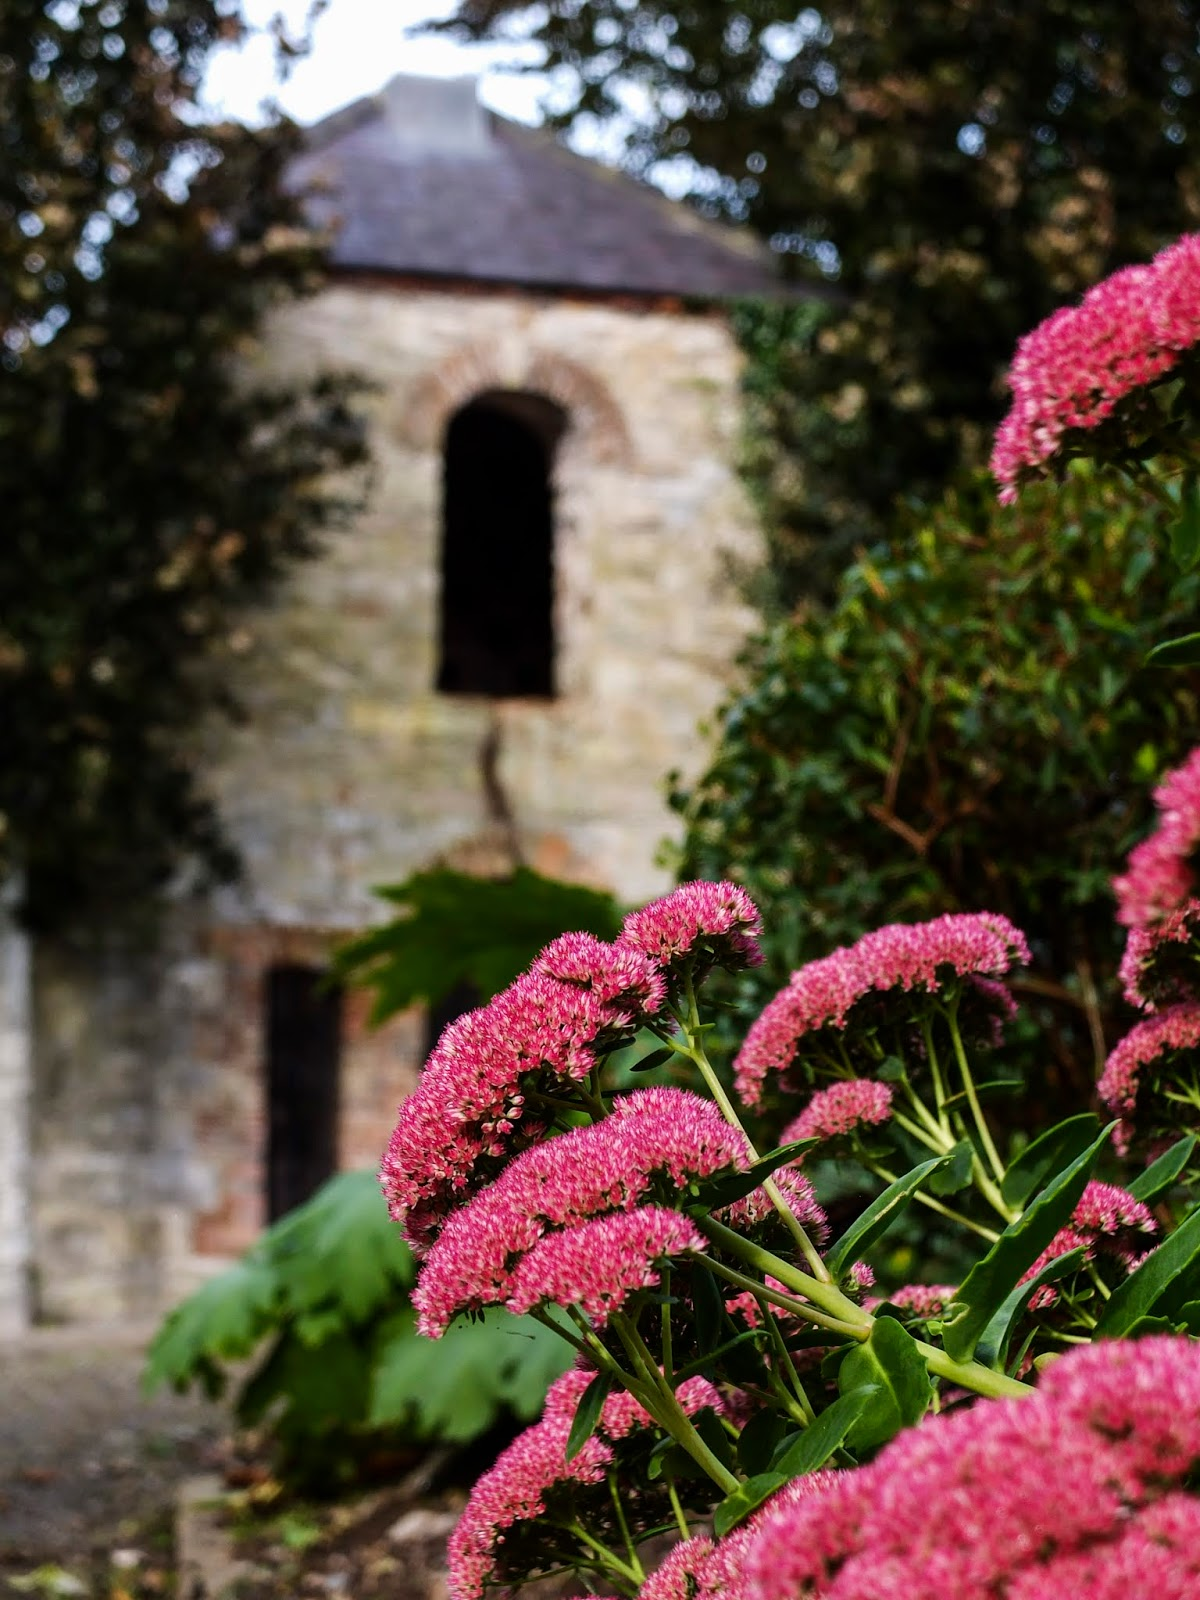 A stone building with pink flowers in front on the Cahir Castle grounds.